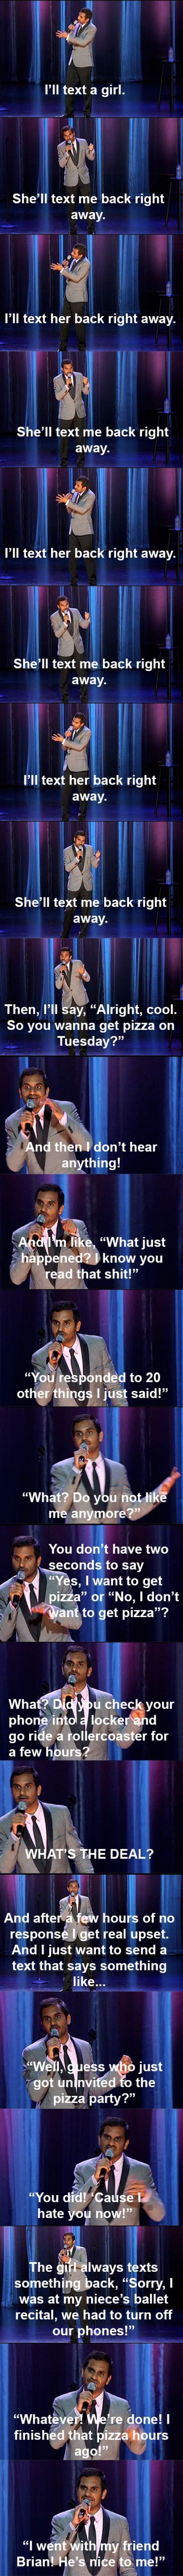 Probably my favorite stand-up comic ever